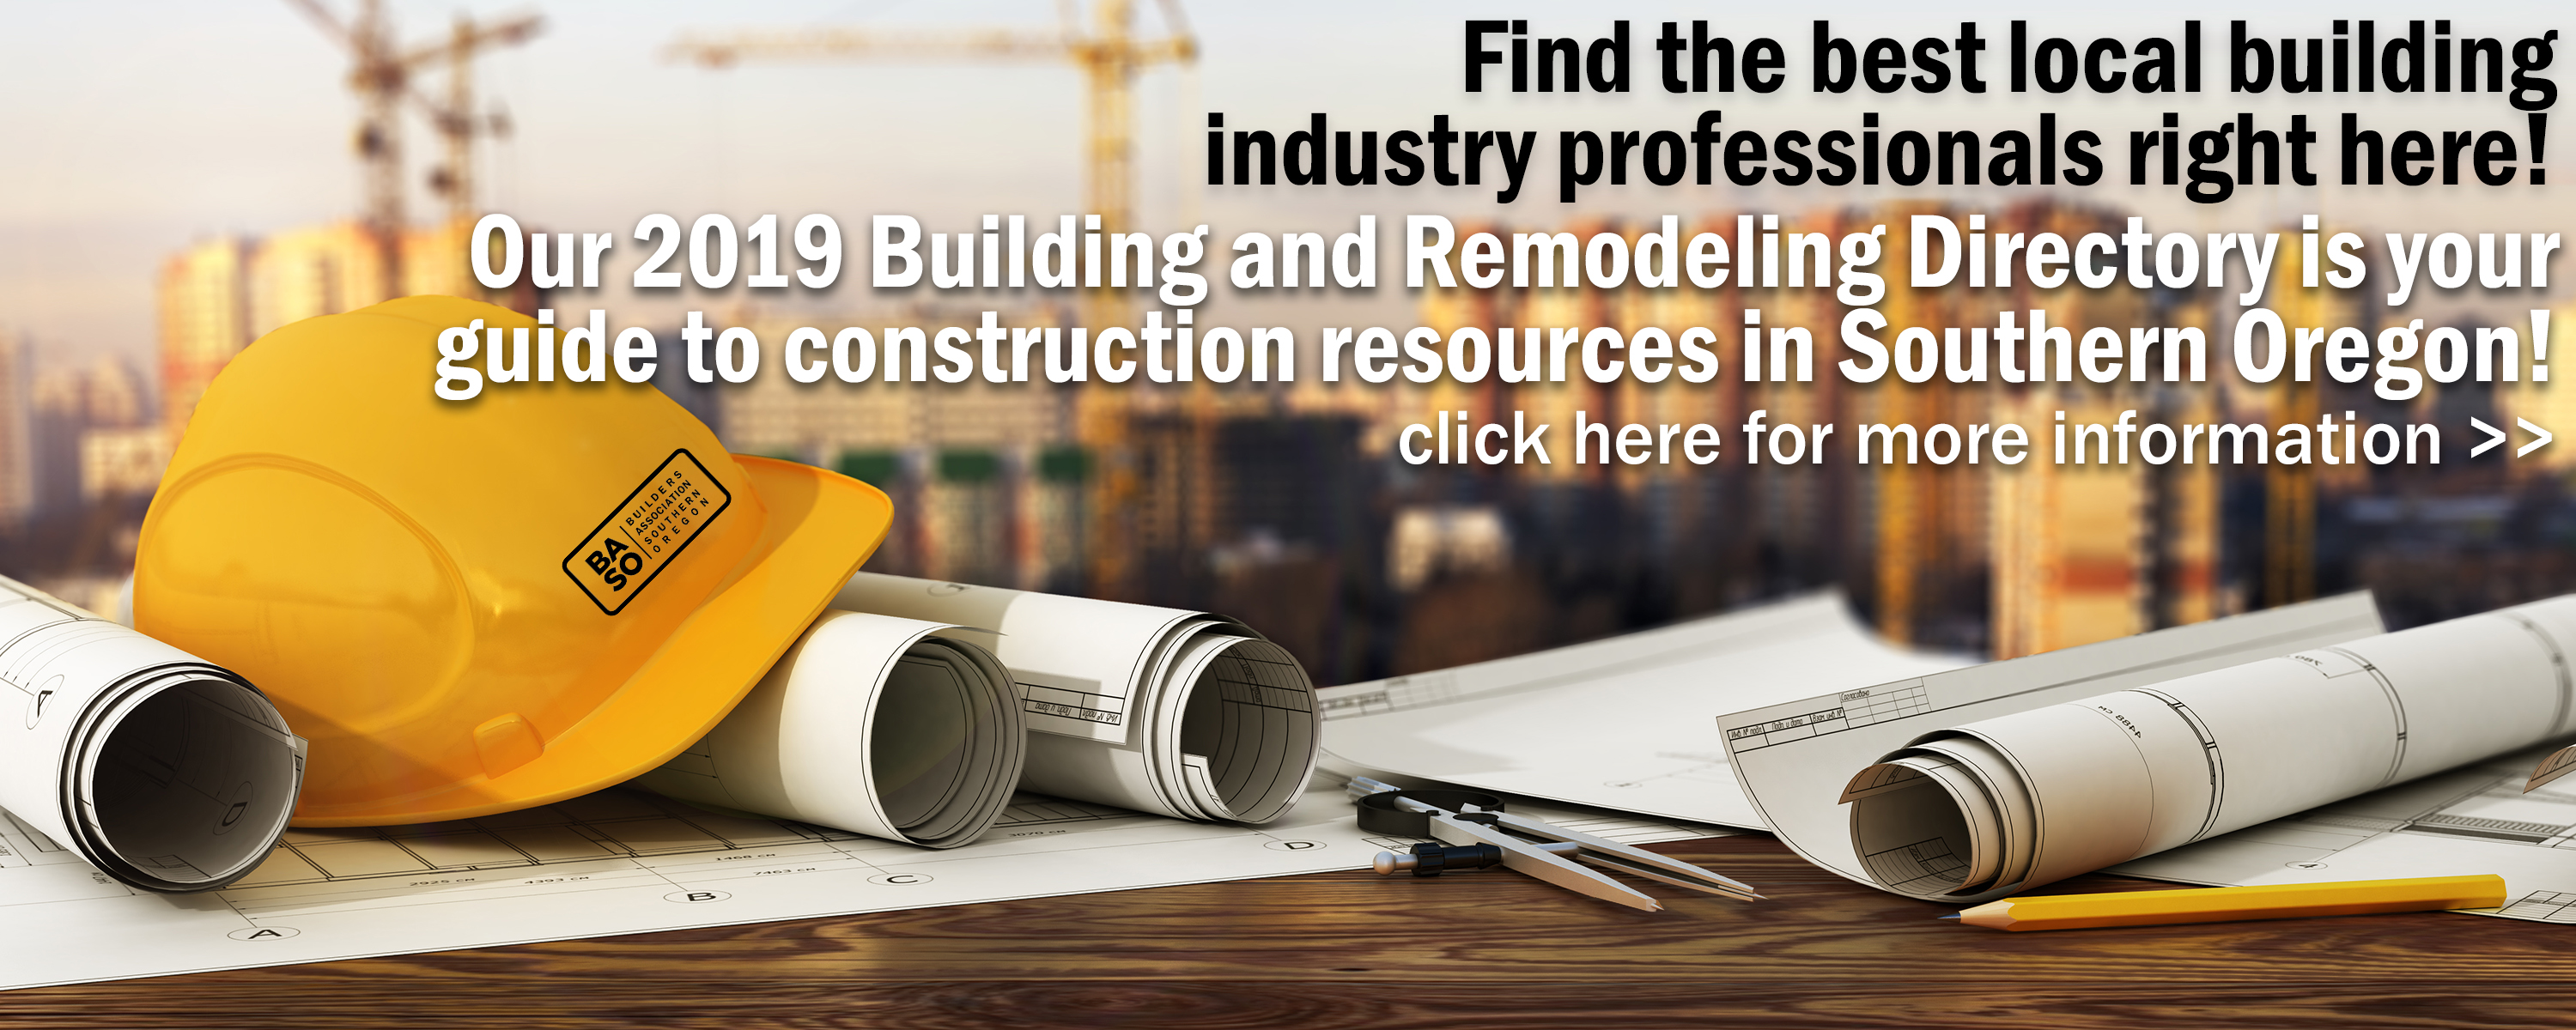 Click here for the Building and Remodeling Directory